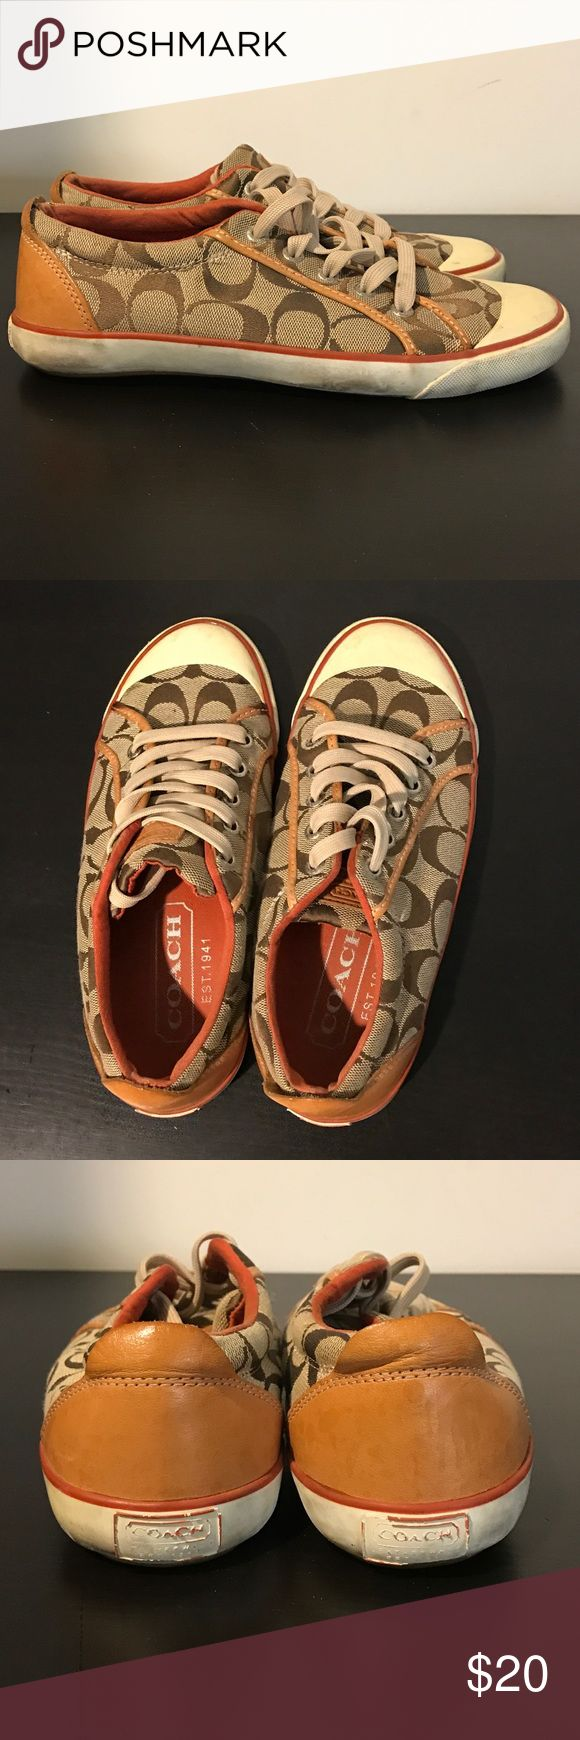 Coach Sneakers Classic Coach sneakers with C monogram pattern.   NOT new... have been loved/worn. Coach Shoes Sneakers